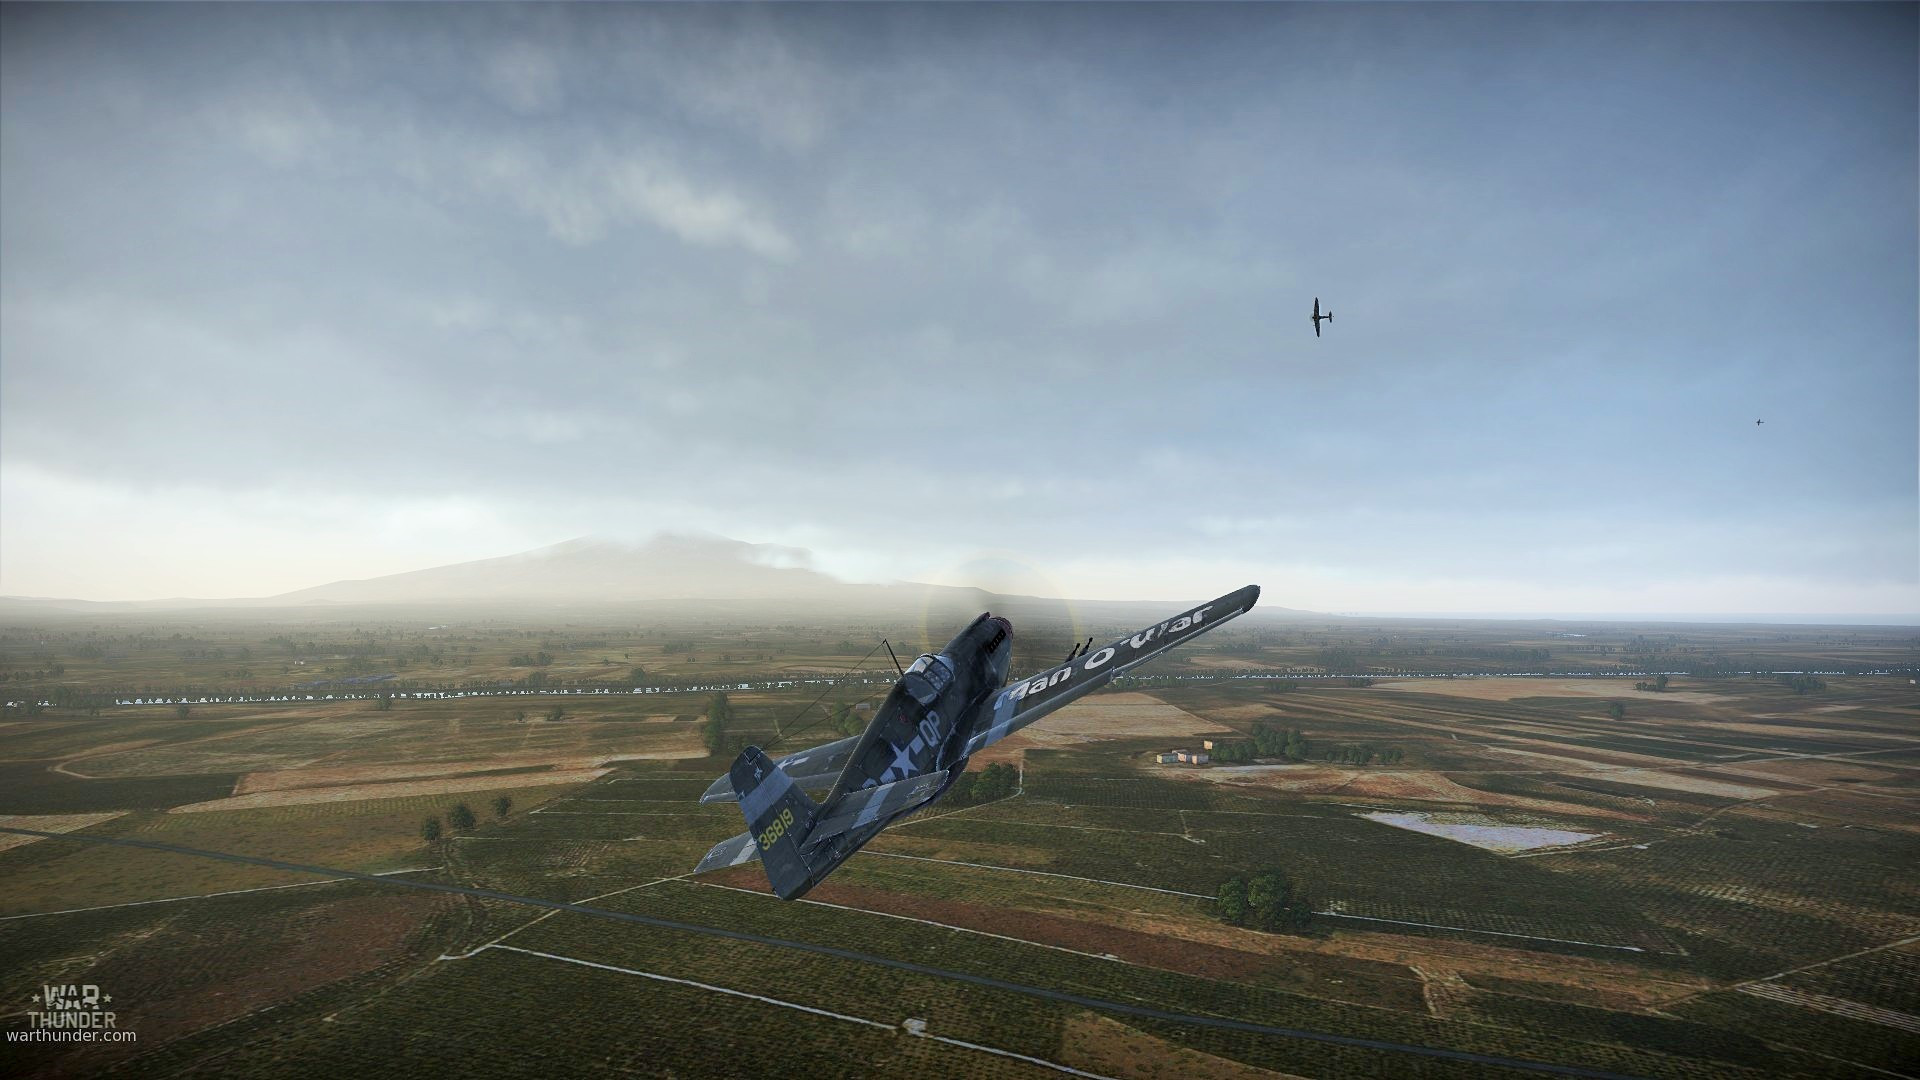 War thunder close call (1)